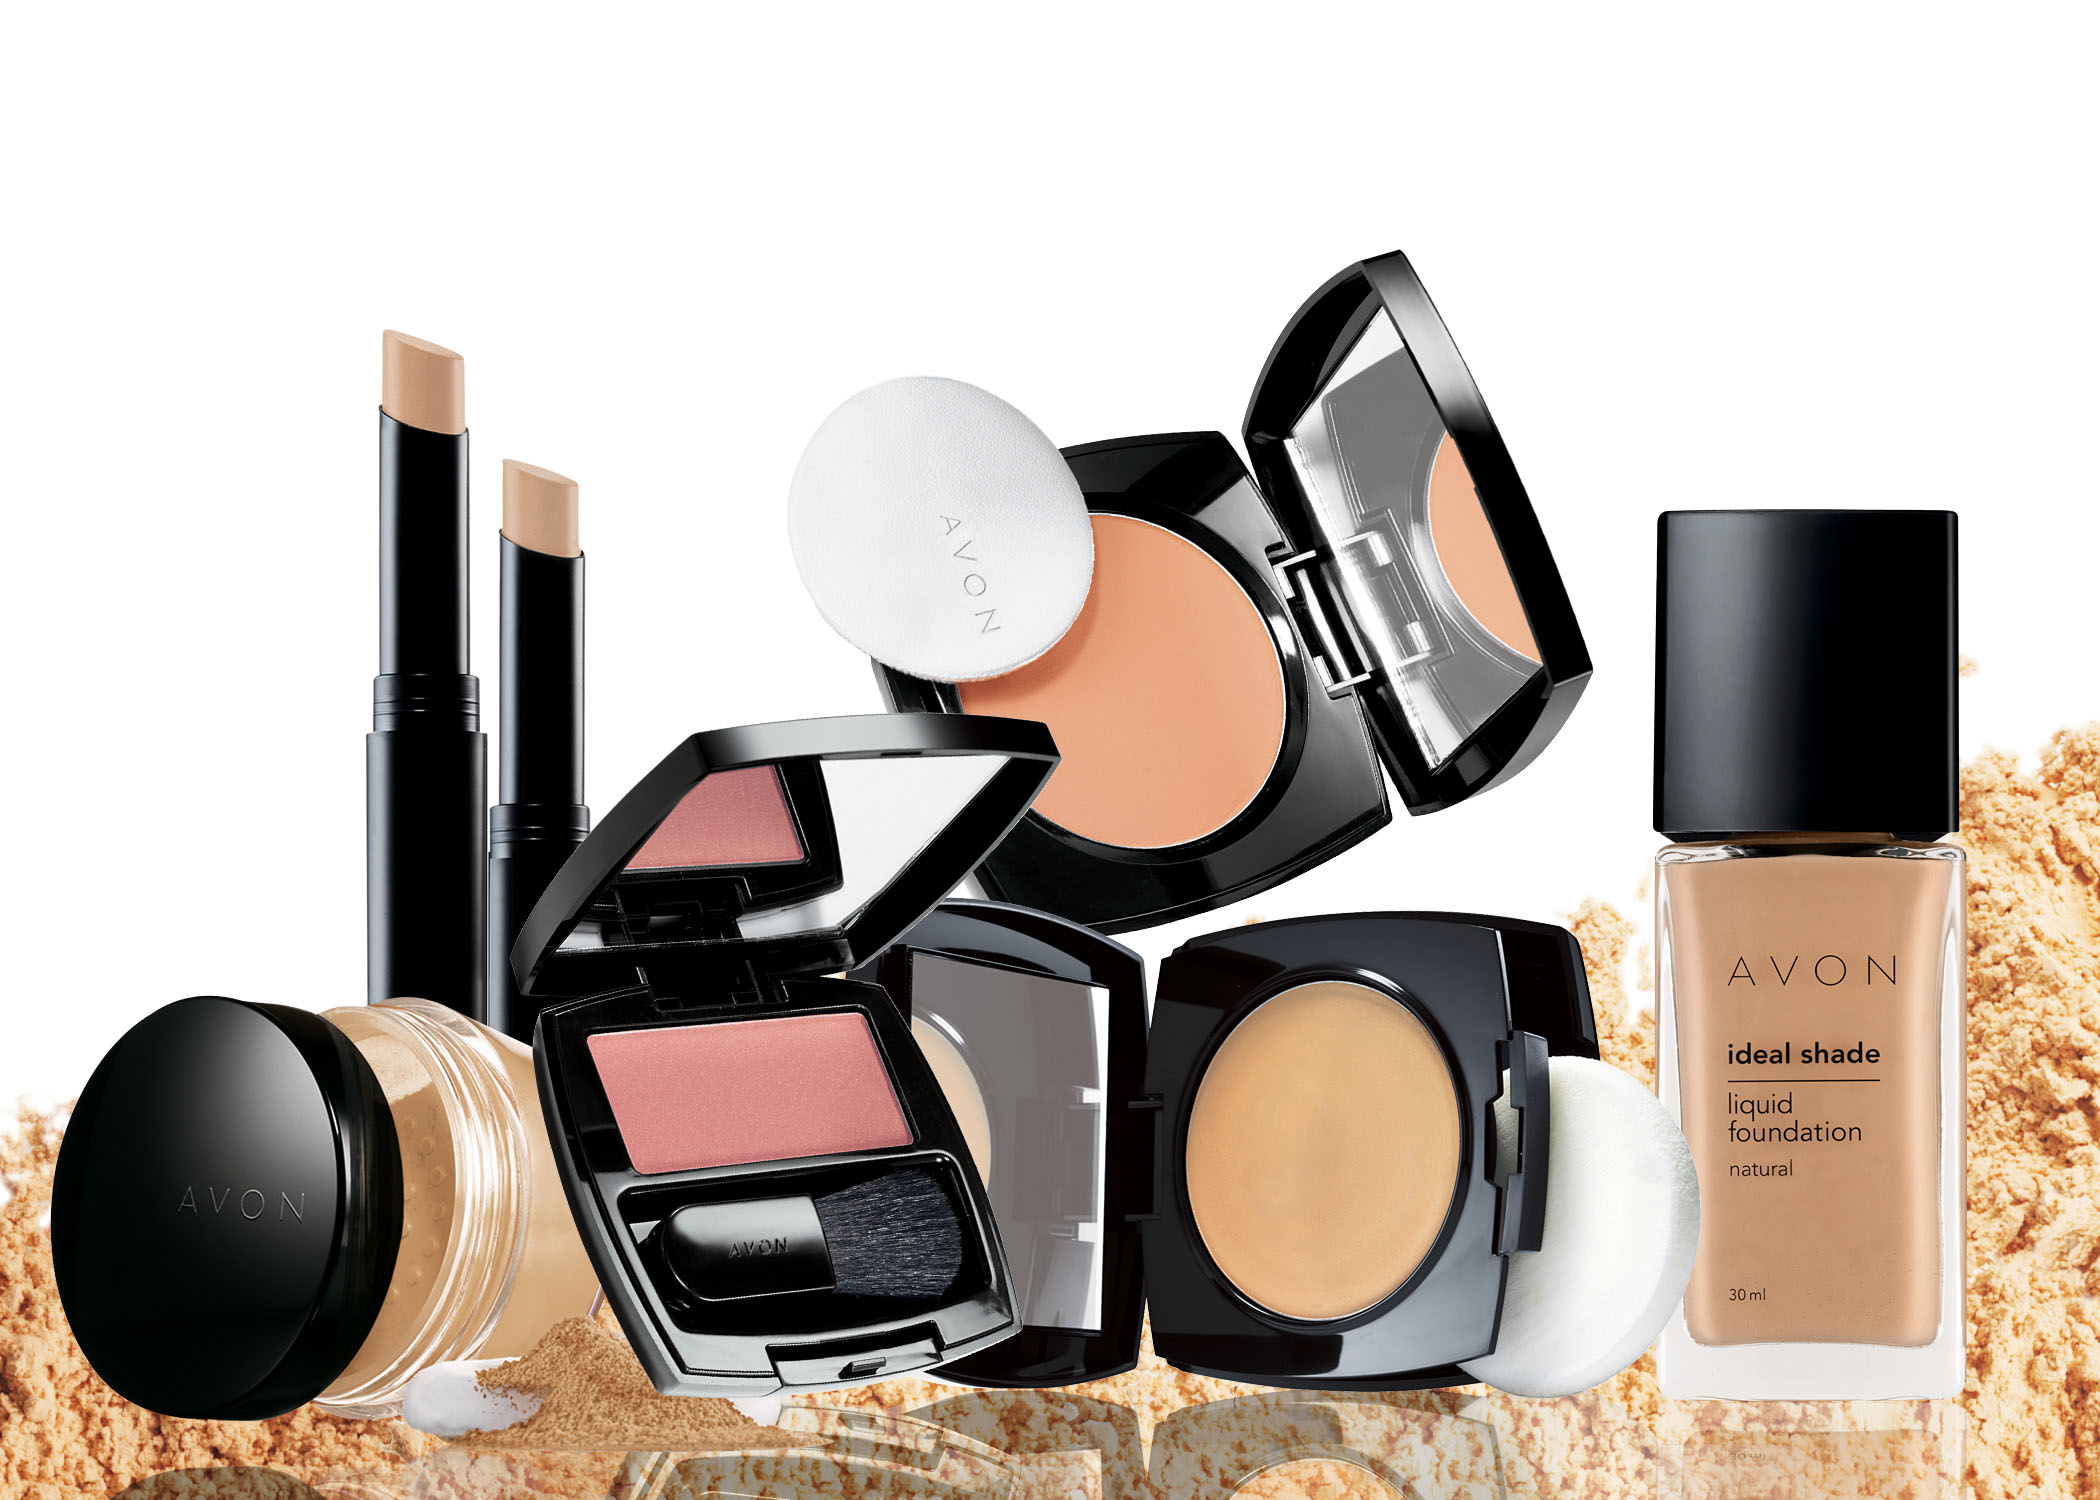 What type of products are in the Avon catalog?